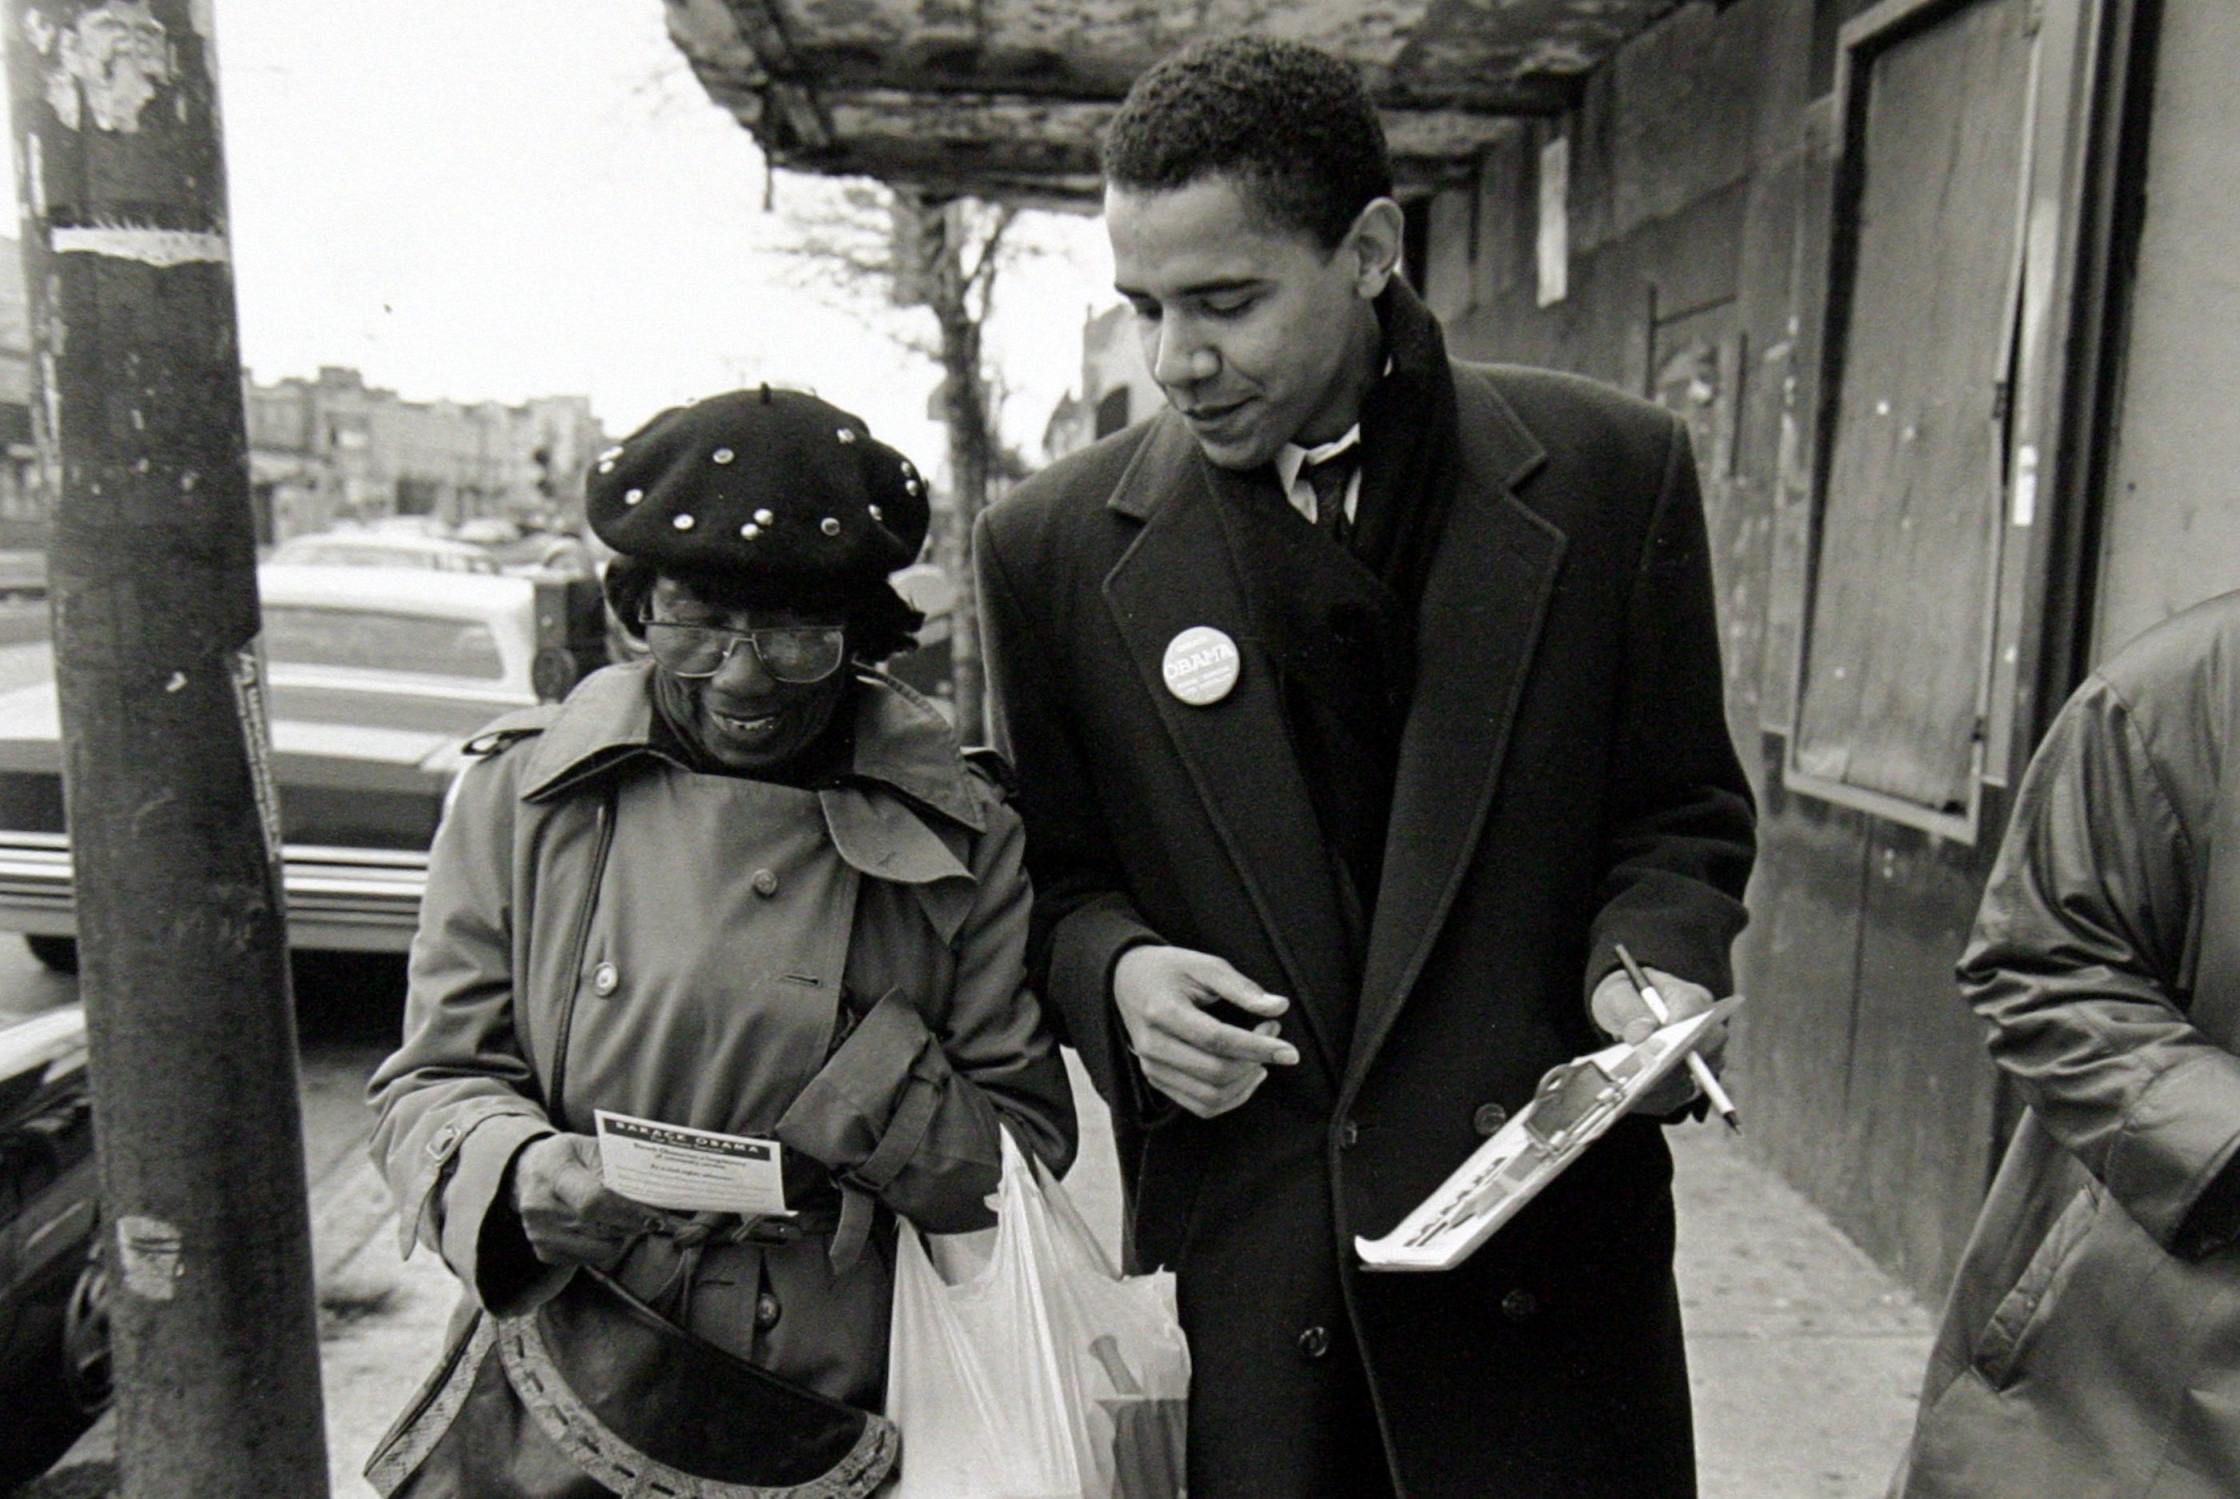 Depicted is President Obama when he served as a community organizer in the South Side of Chicago.